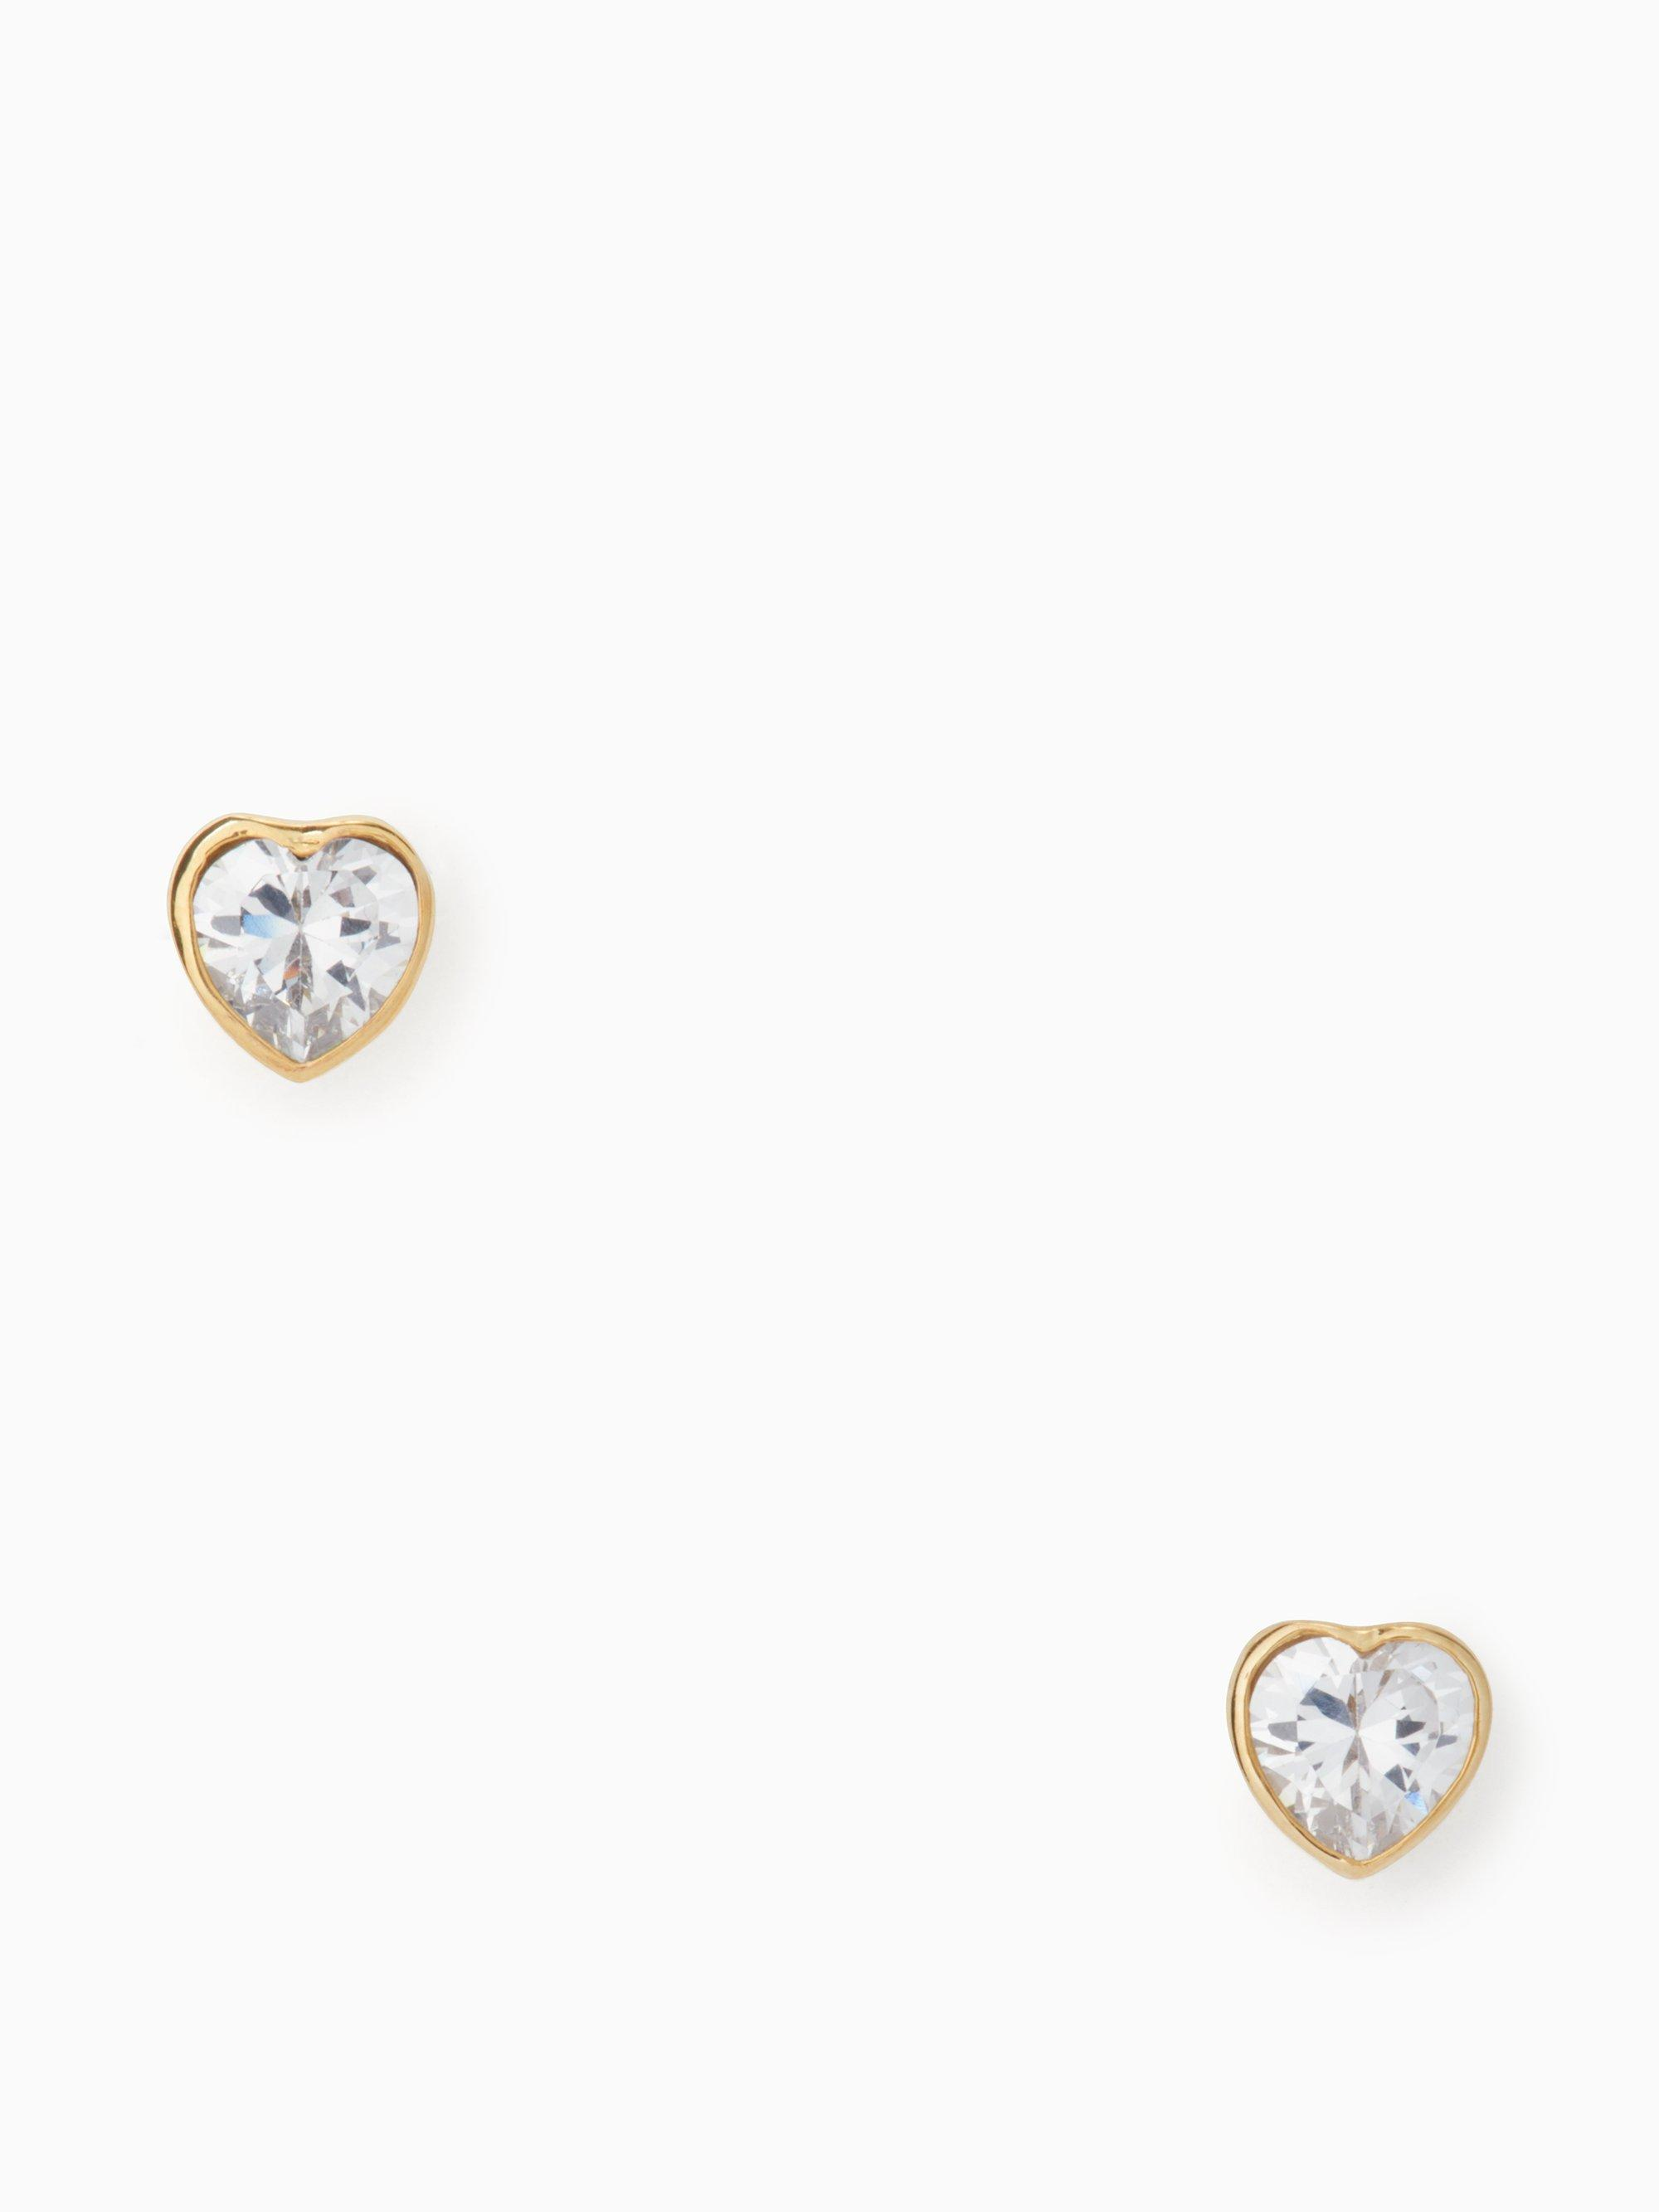 d8aff3f81 Kate Spade. Women's Romantic Rocks Studs. $38 From kate spade new york